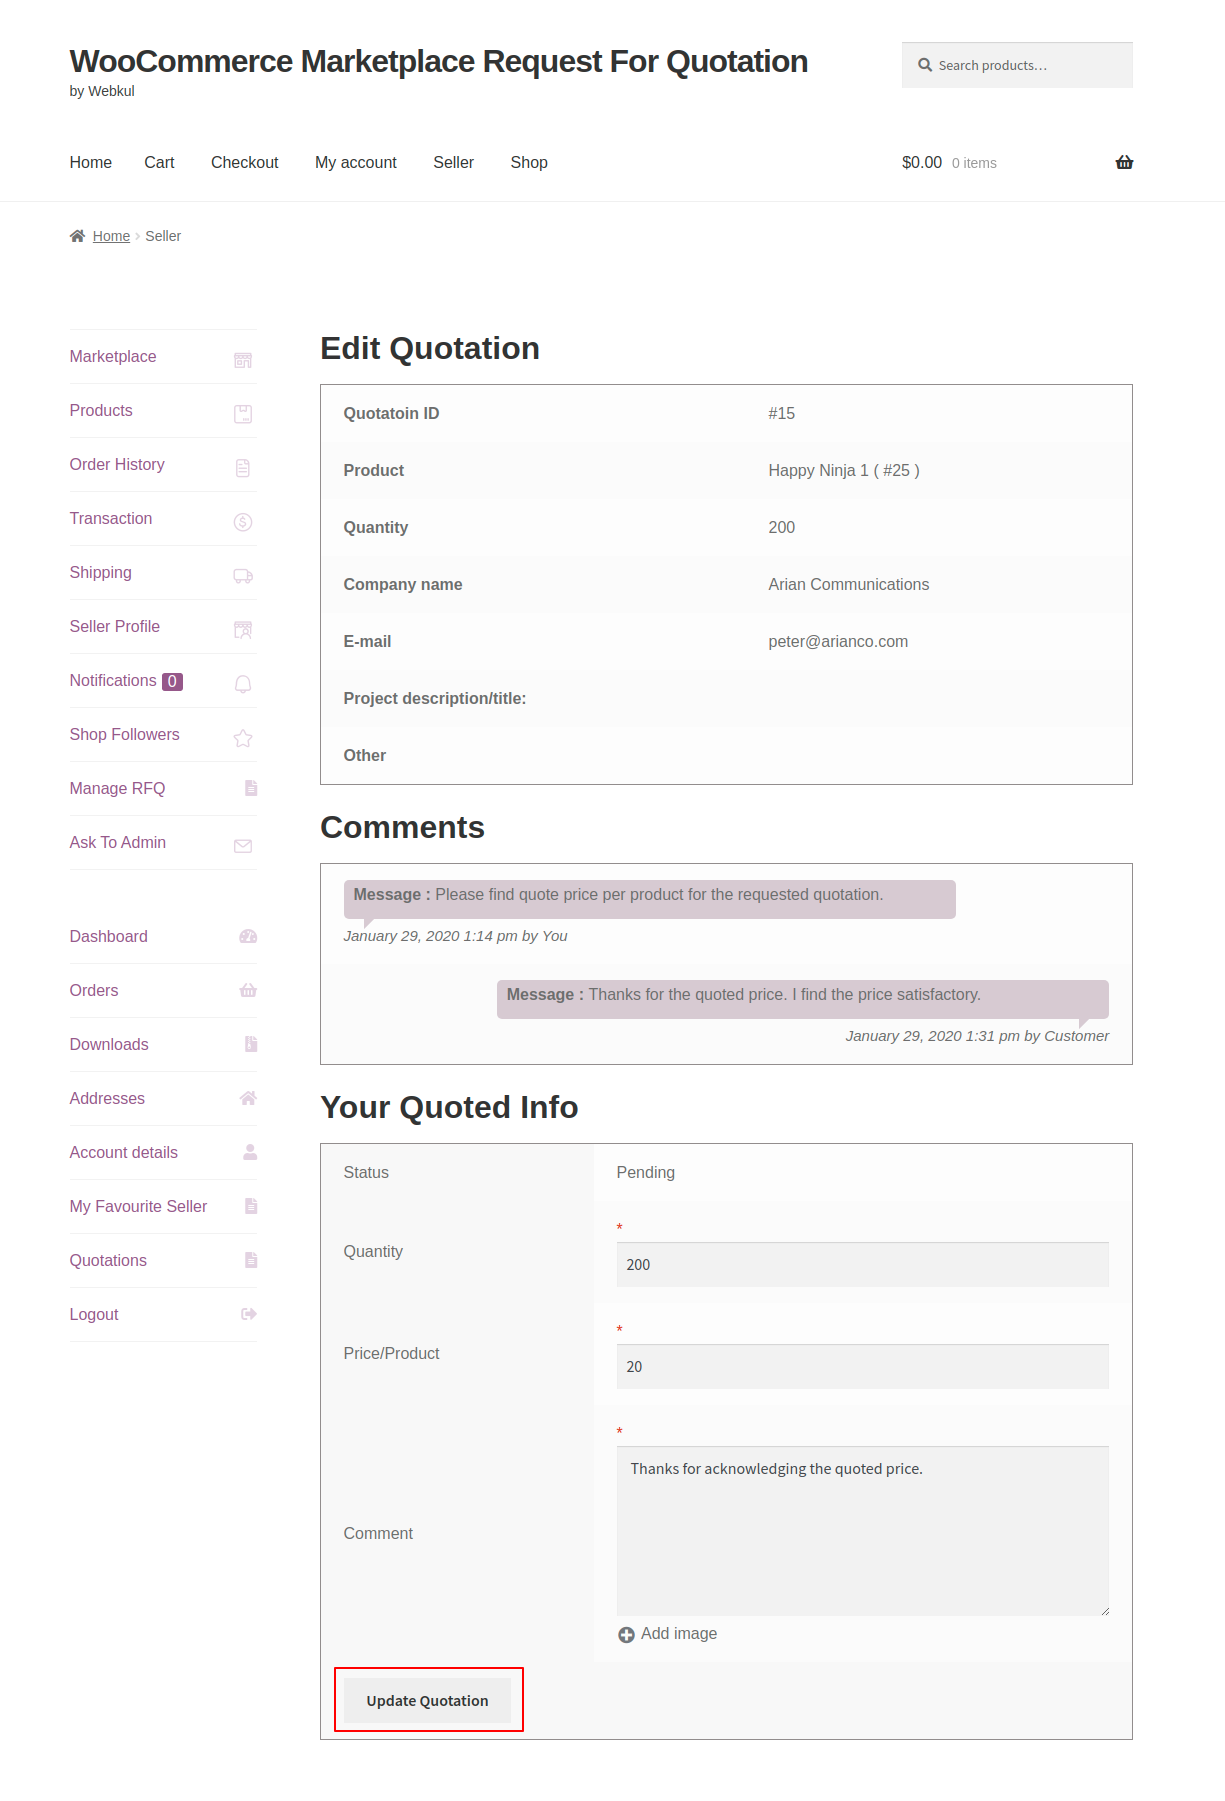 webkul-woocommerce-marketplace-request-for-quotation-seller-end-adding-pending-quote-info